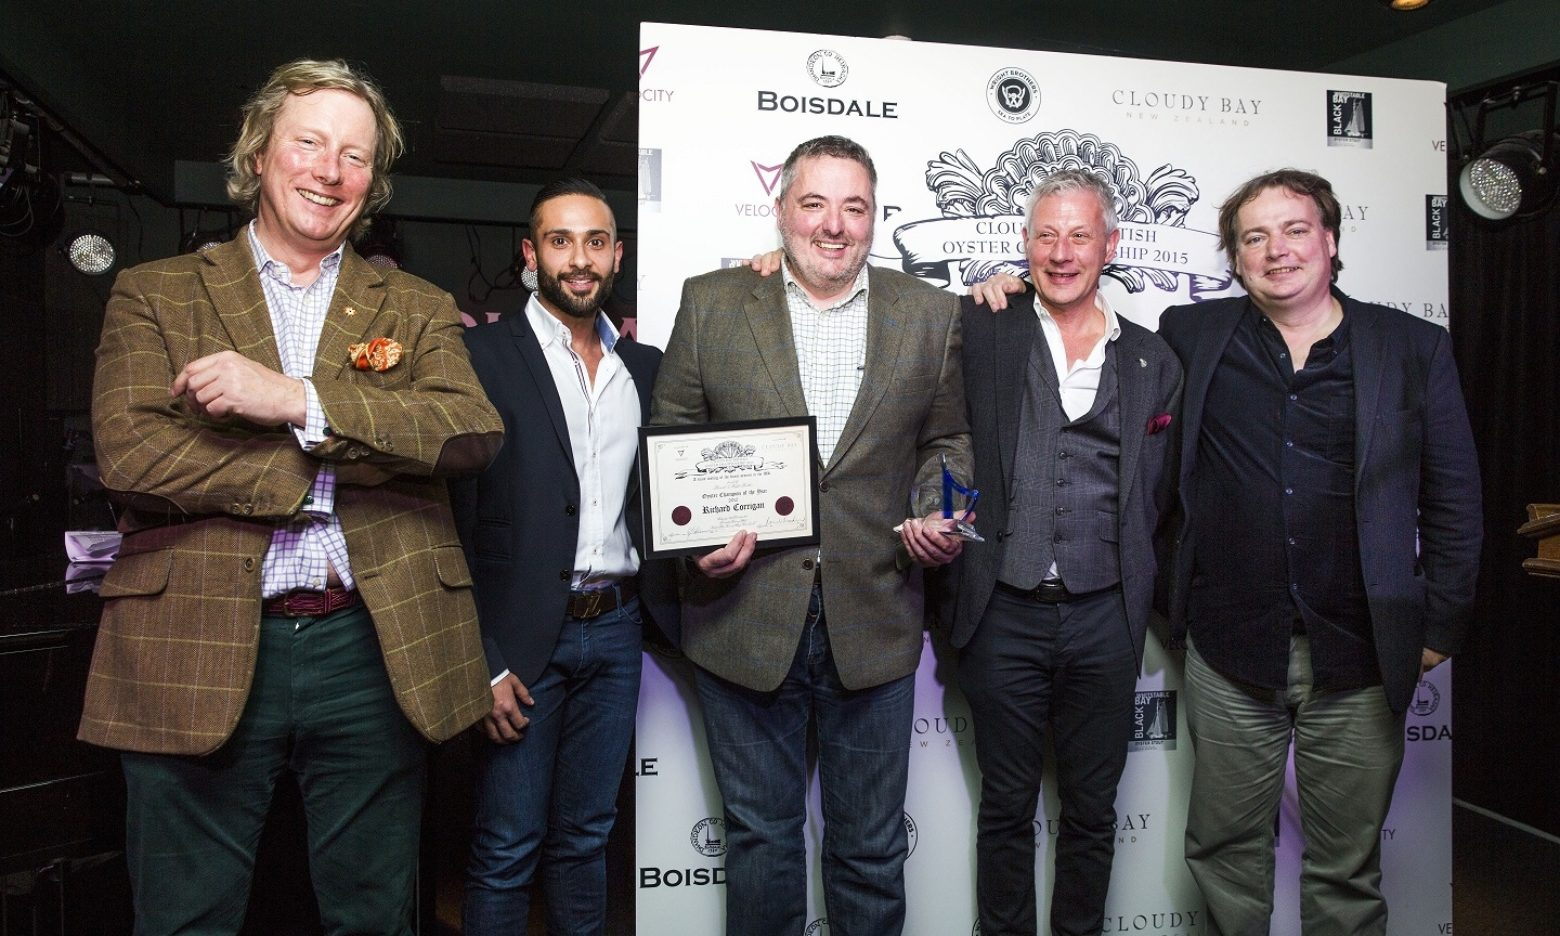 Boisdale & Wright Brothers  The Cloudy Bay British Oyster Championship & Lunch 2015